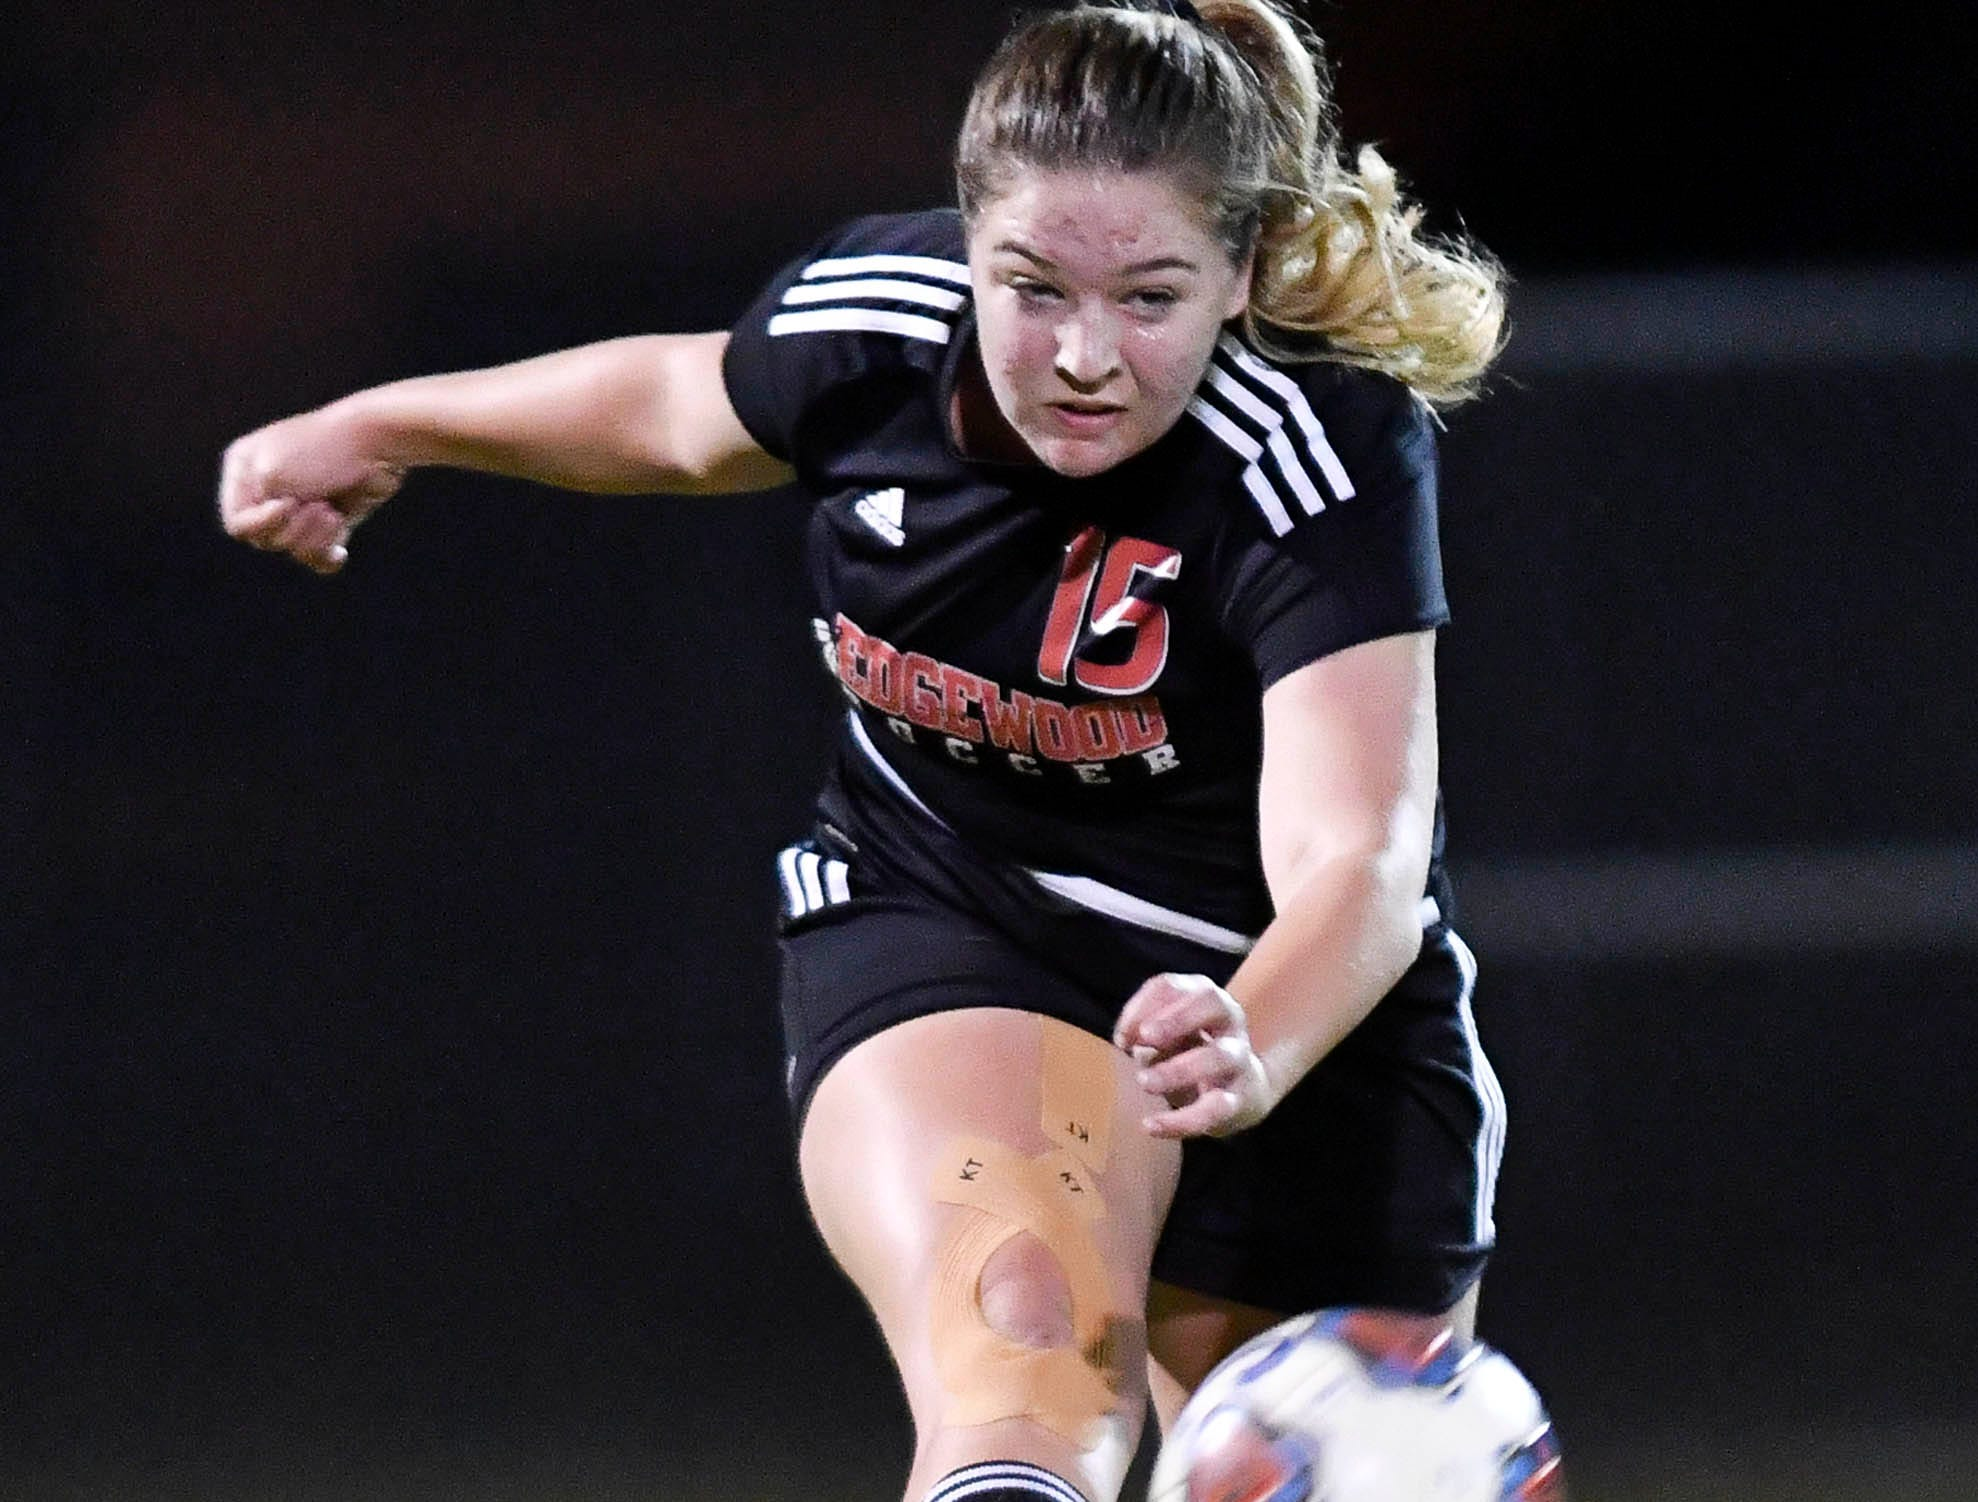 Edgewood's Julia Passarelli drives the ball downfield during Friday's Class 2A regional semifinal against Trinity Prep.